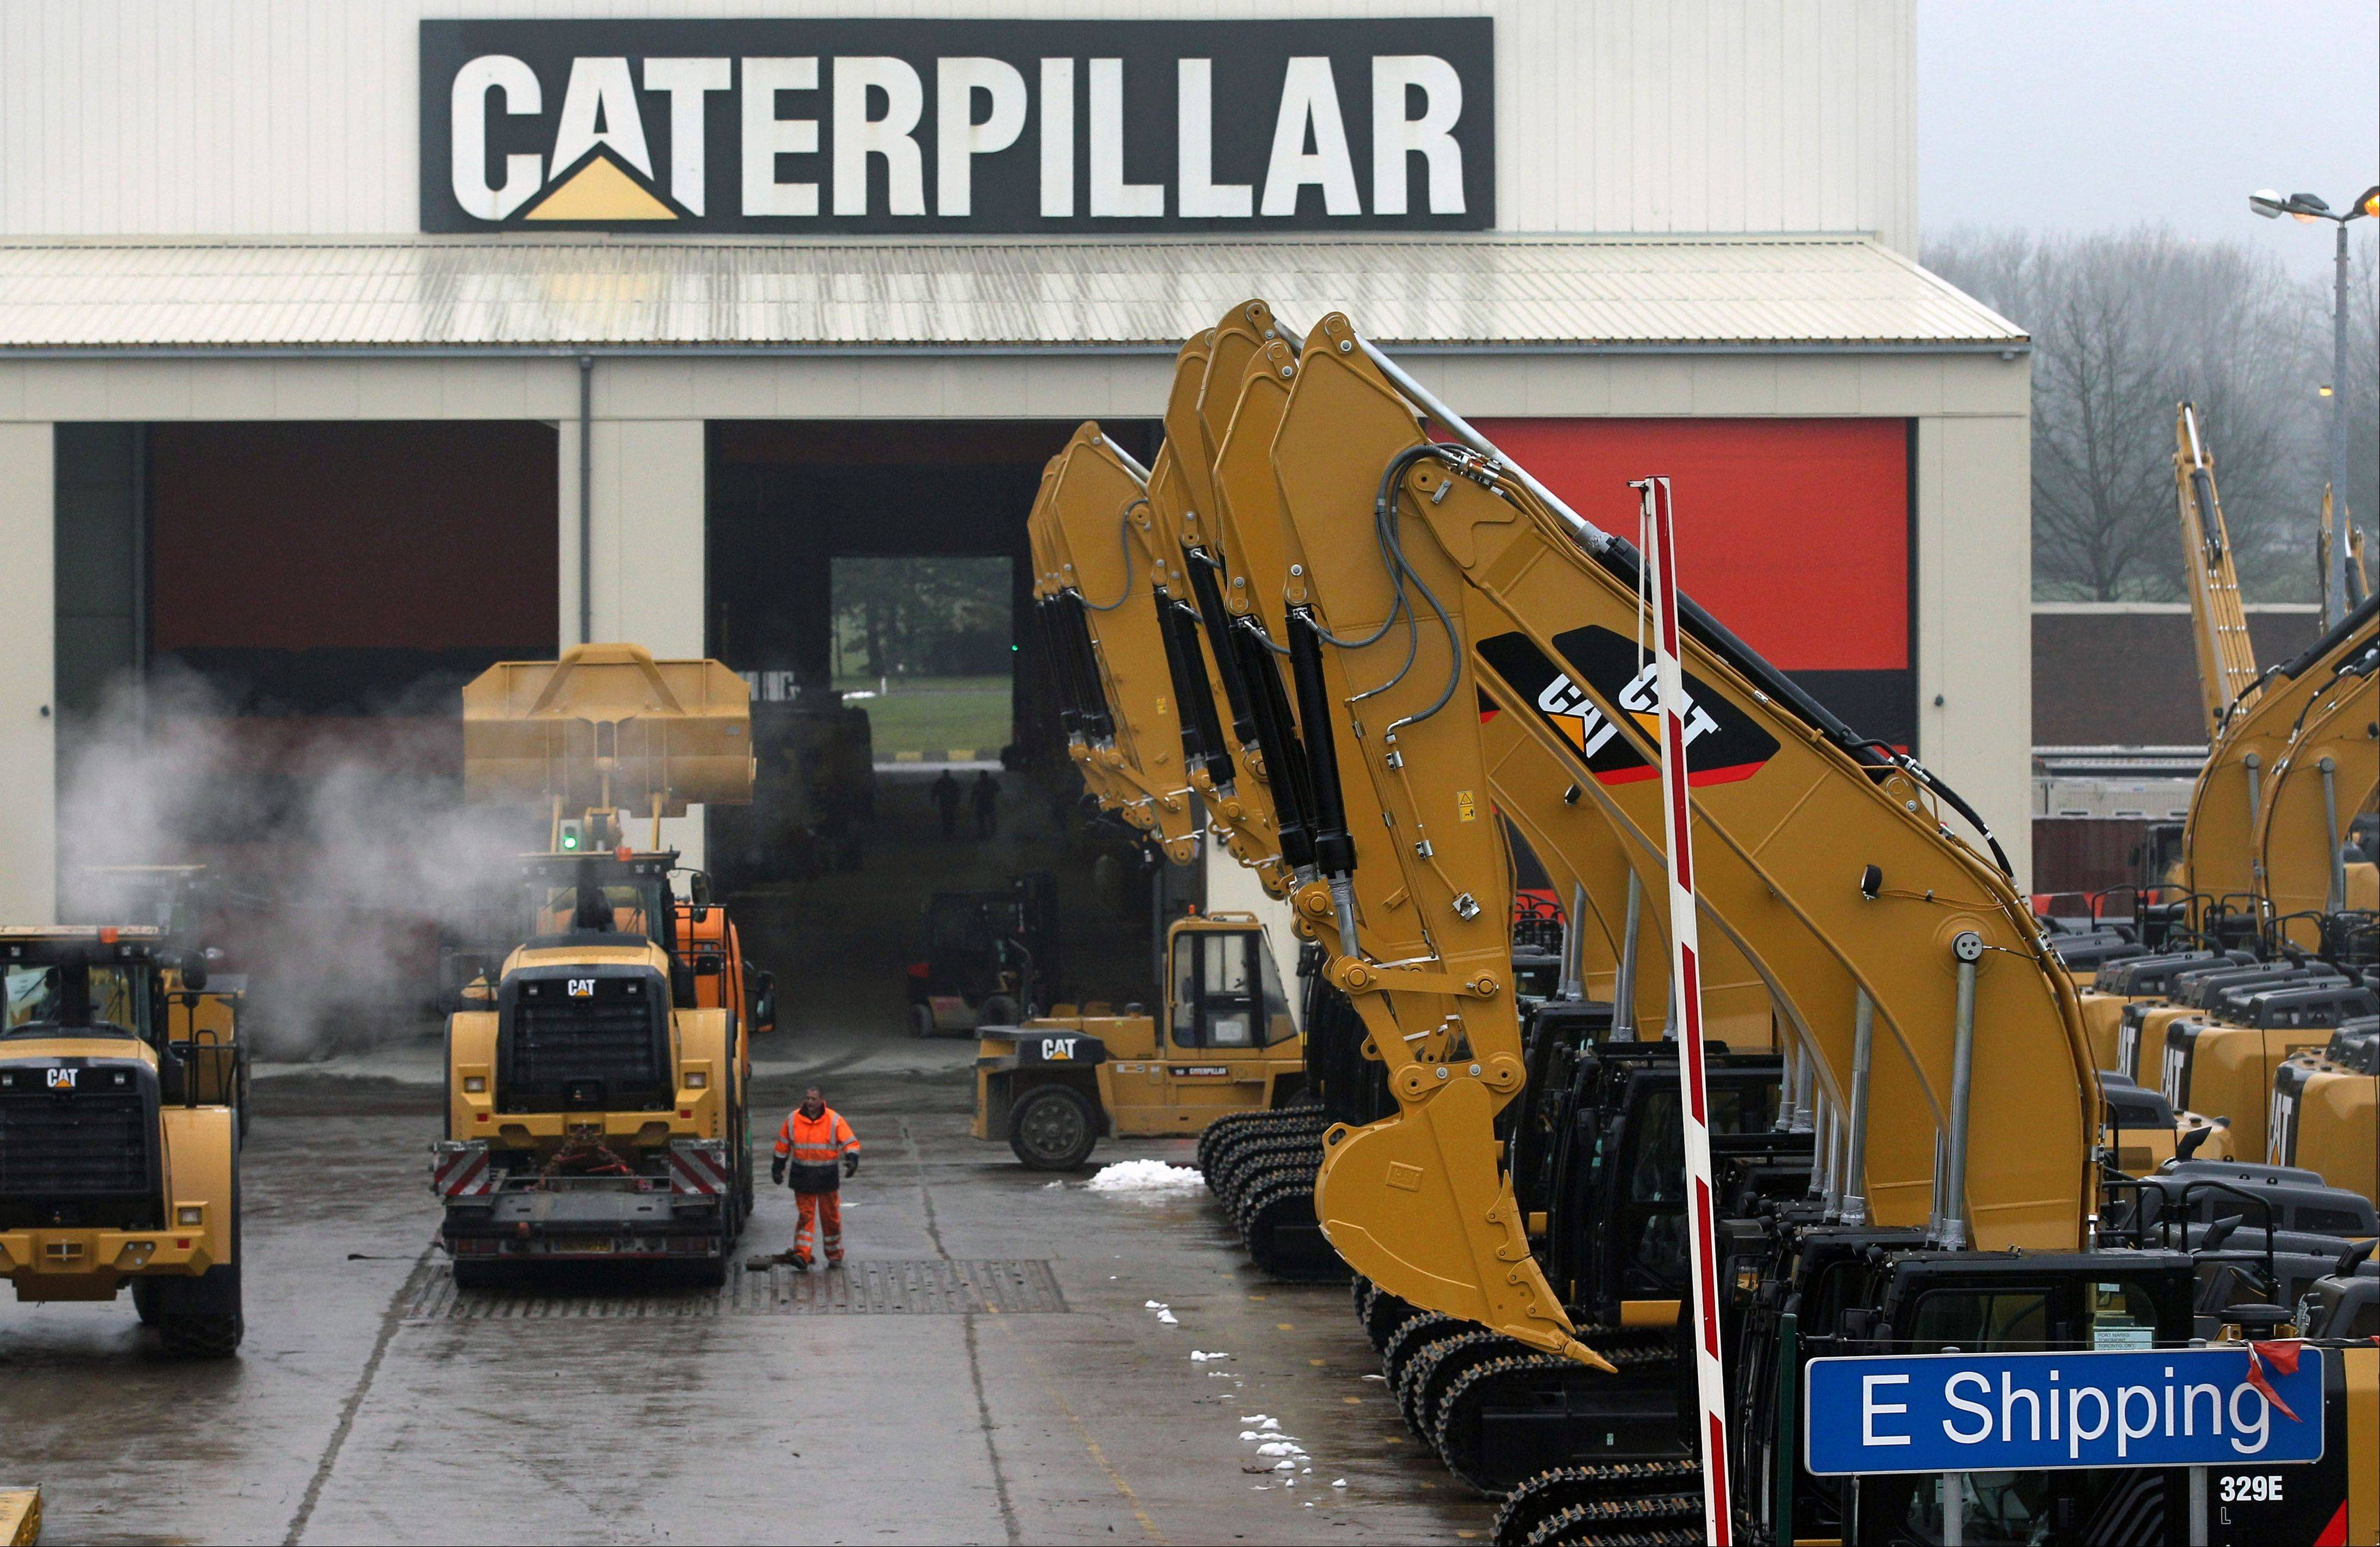 Peoria-based Caterpillar says its third-quarter earnings plunged 44 percent, and the construction equipment maker cut its 2013 forecast again, partly because of weaker mining equipment sales.